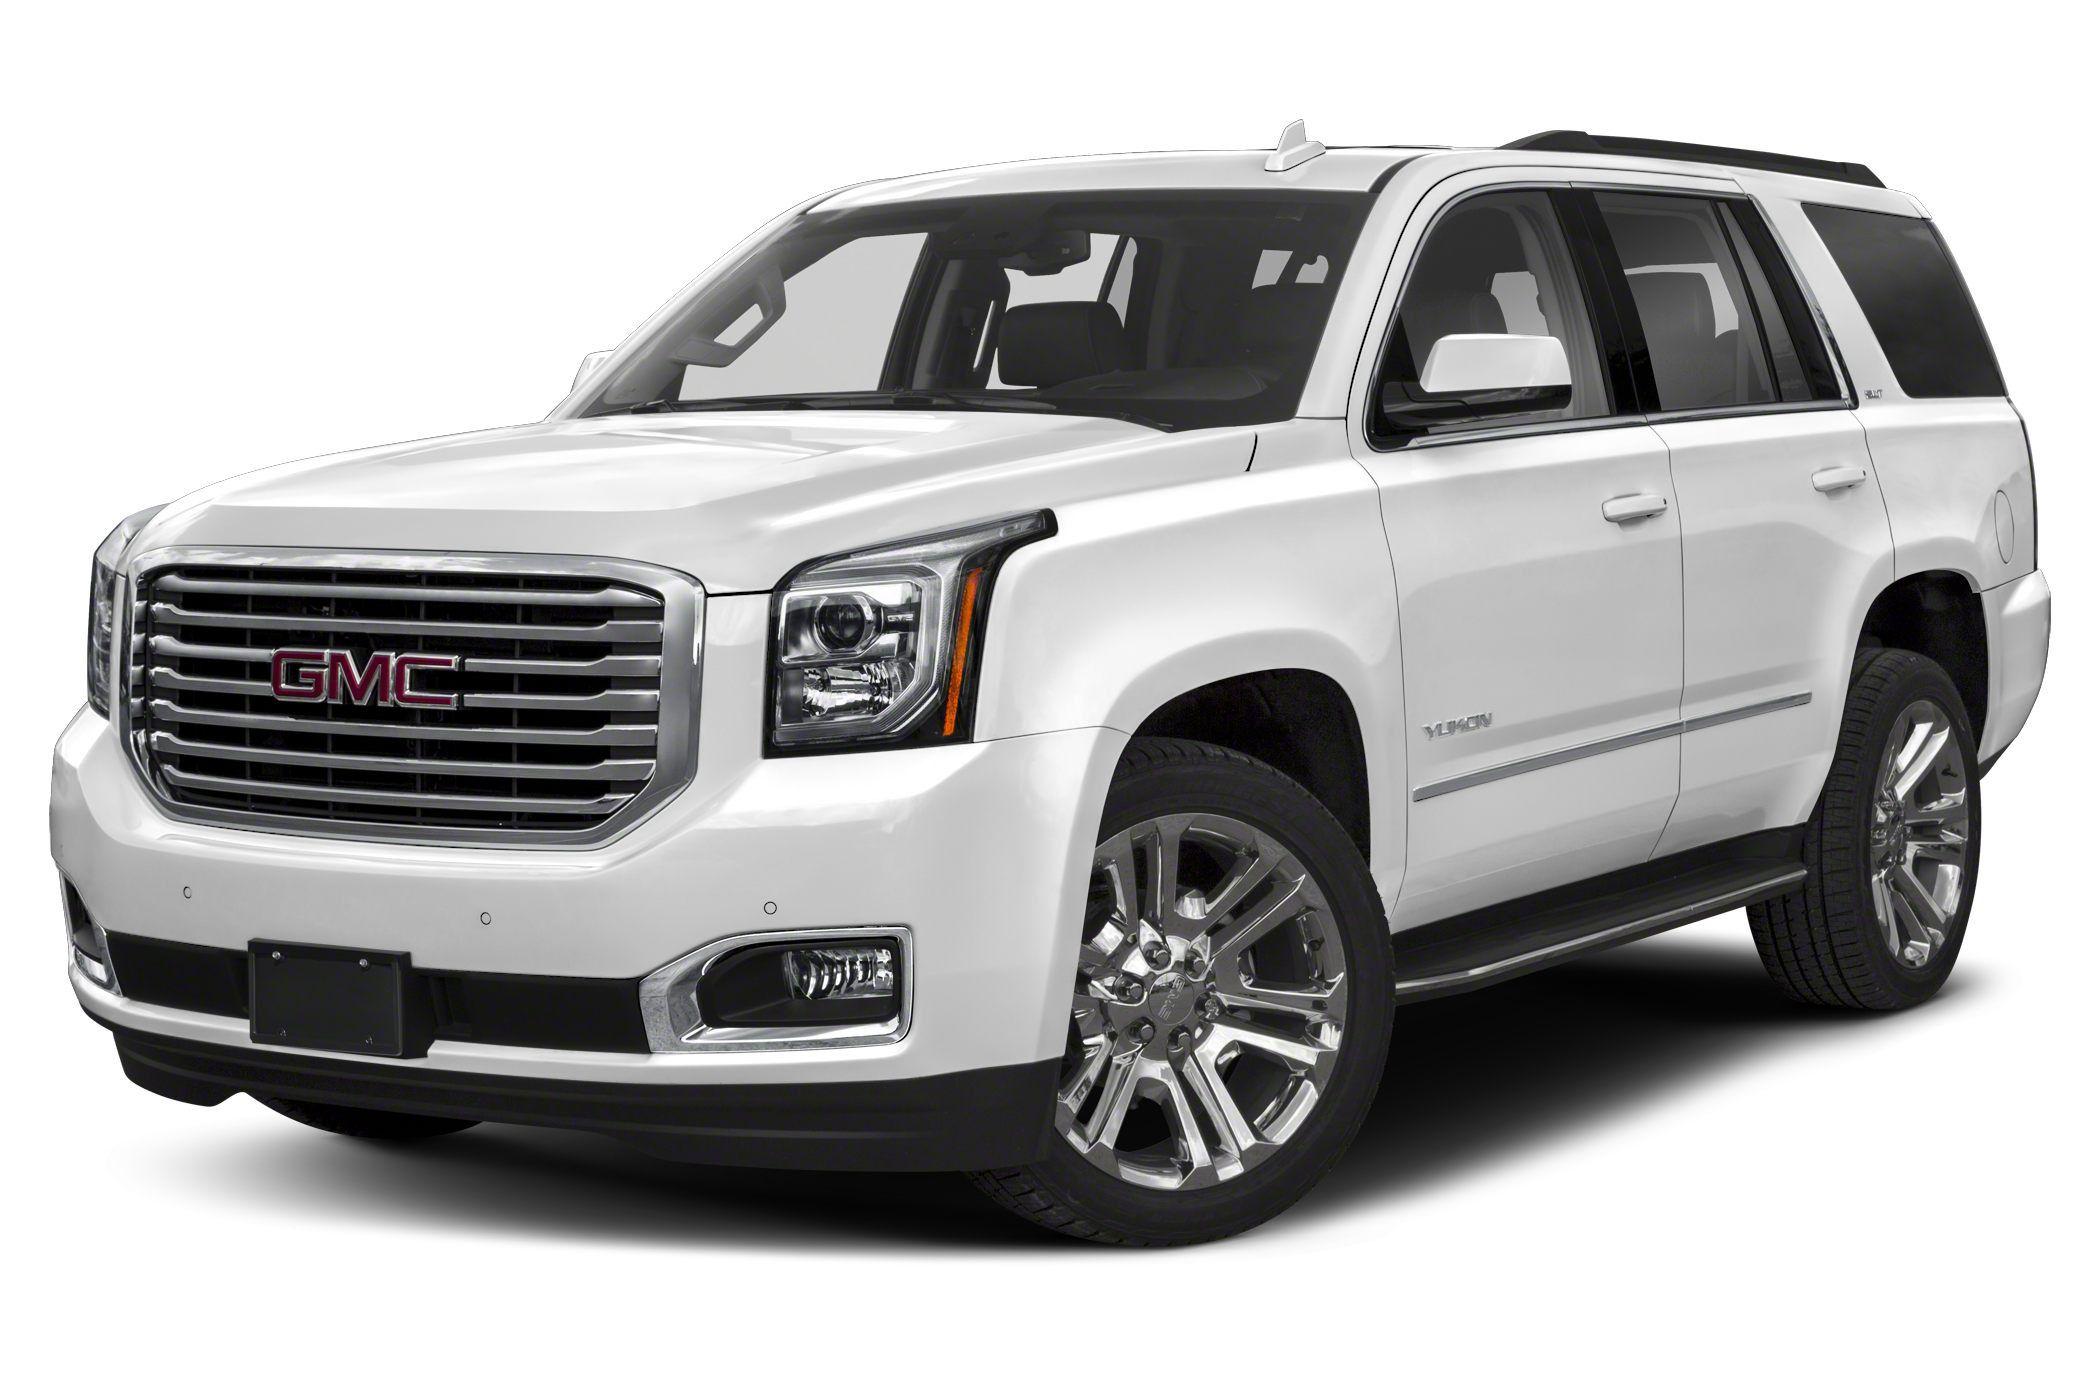 2019 Gmc Yukon Denali Xl Check More At Http Www Best Cars Club